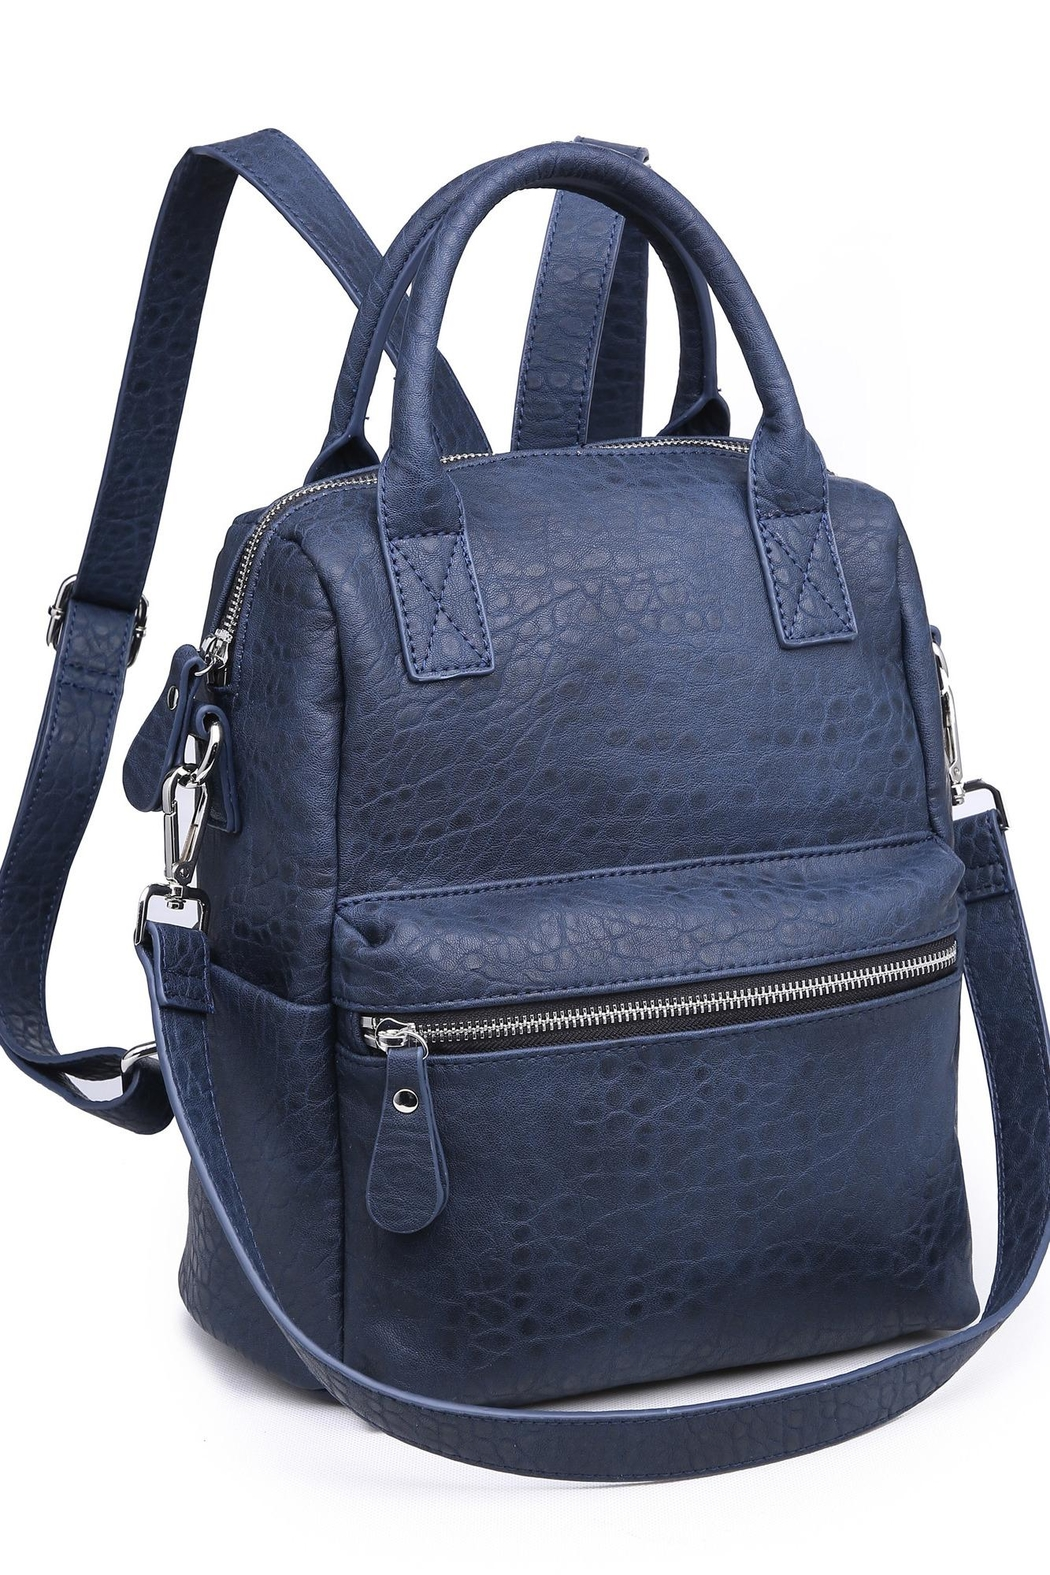 Urban Expressions Andre Textured Backpack - Main Image